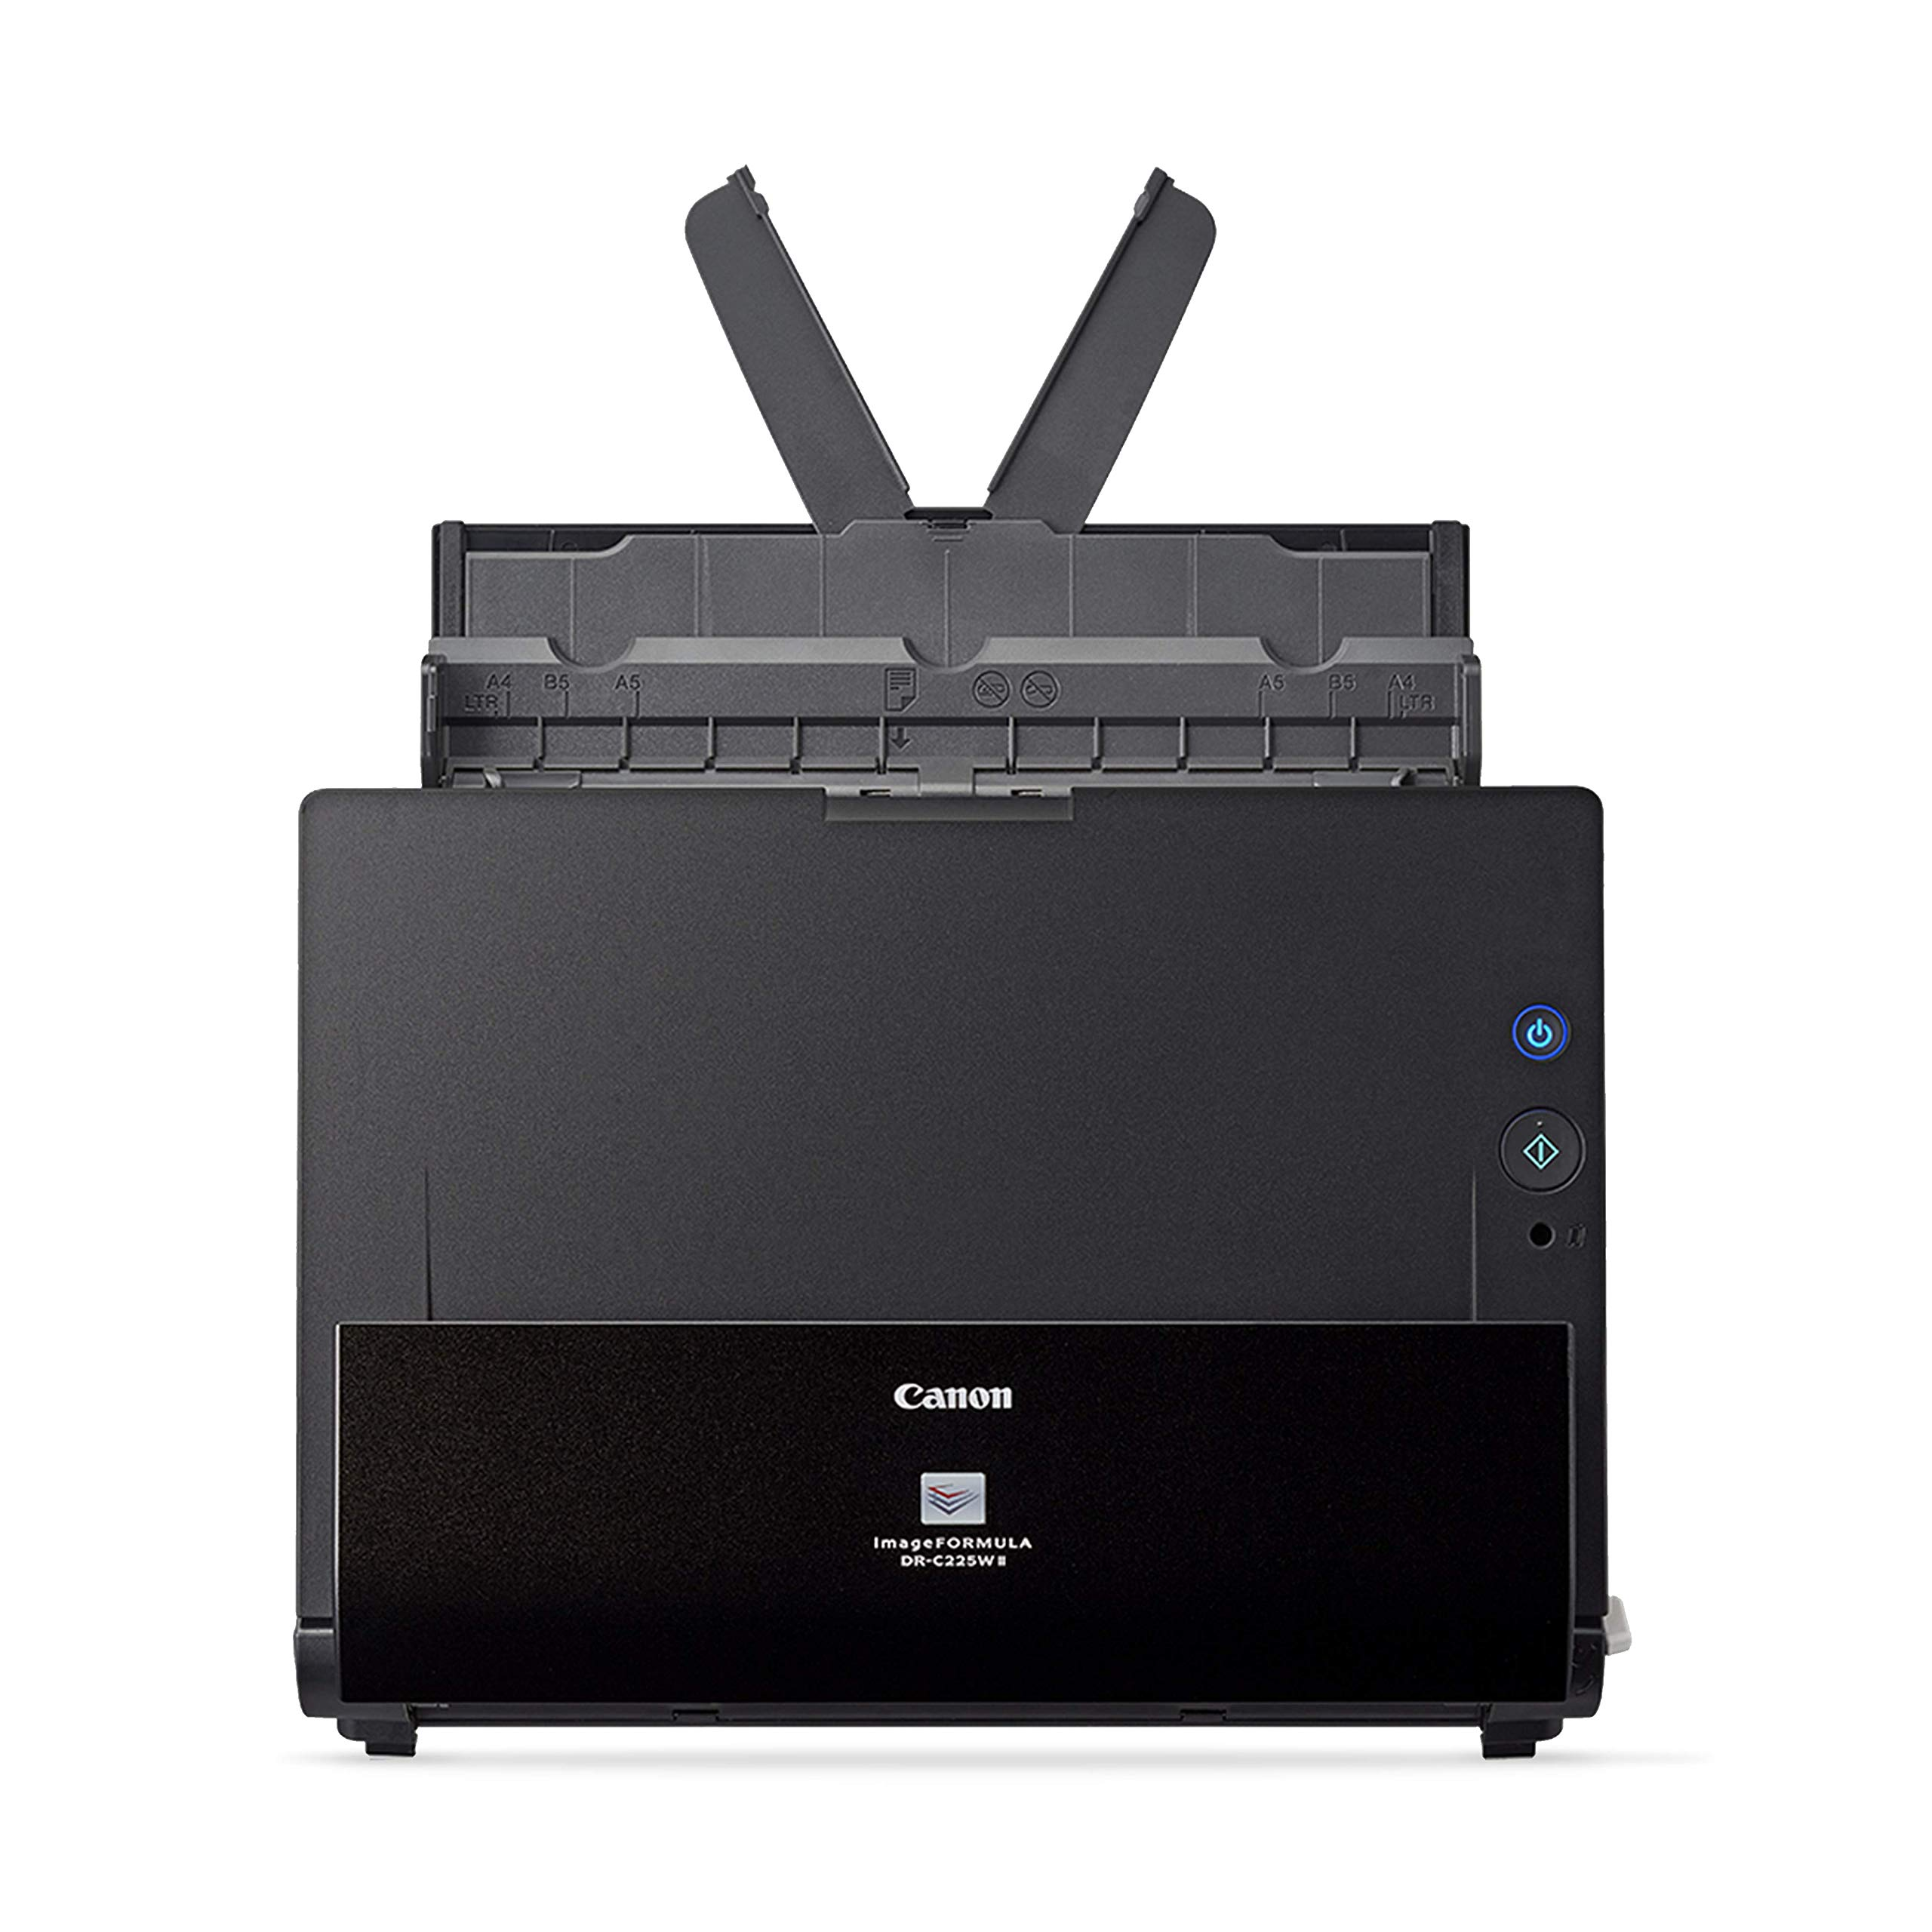 Canon imageFORMULA DR-C225W II Office Document Scanner 3259C002 by Canon